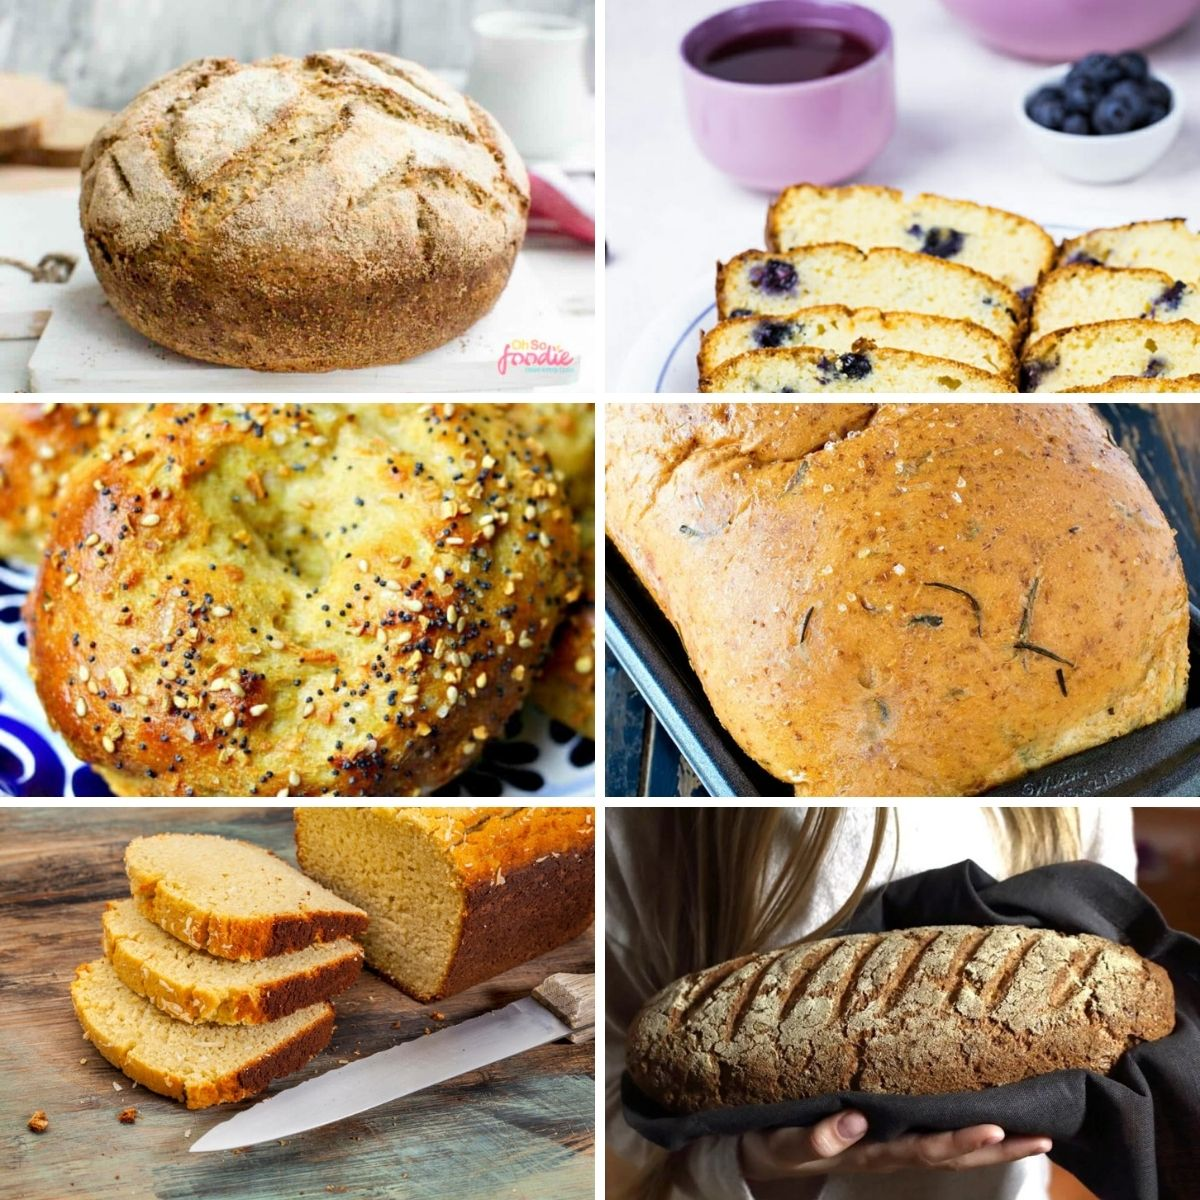 30 Keto Friendly Bread Recipes Perfect For Sandwiches And More